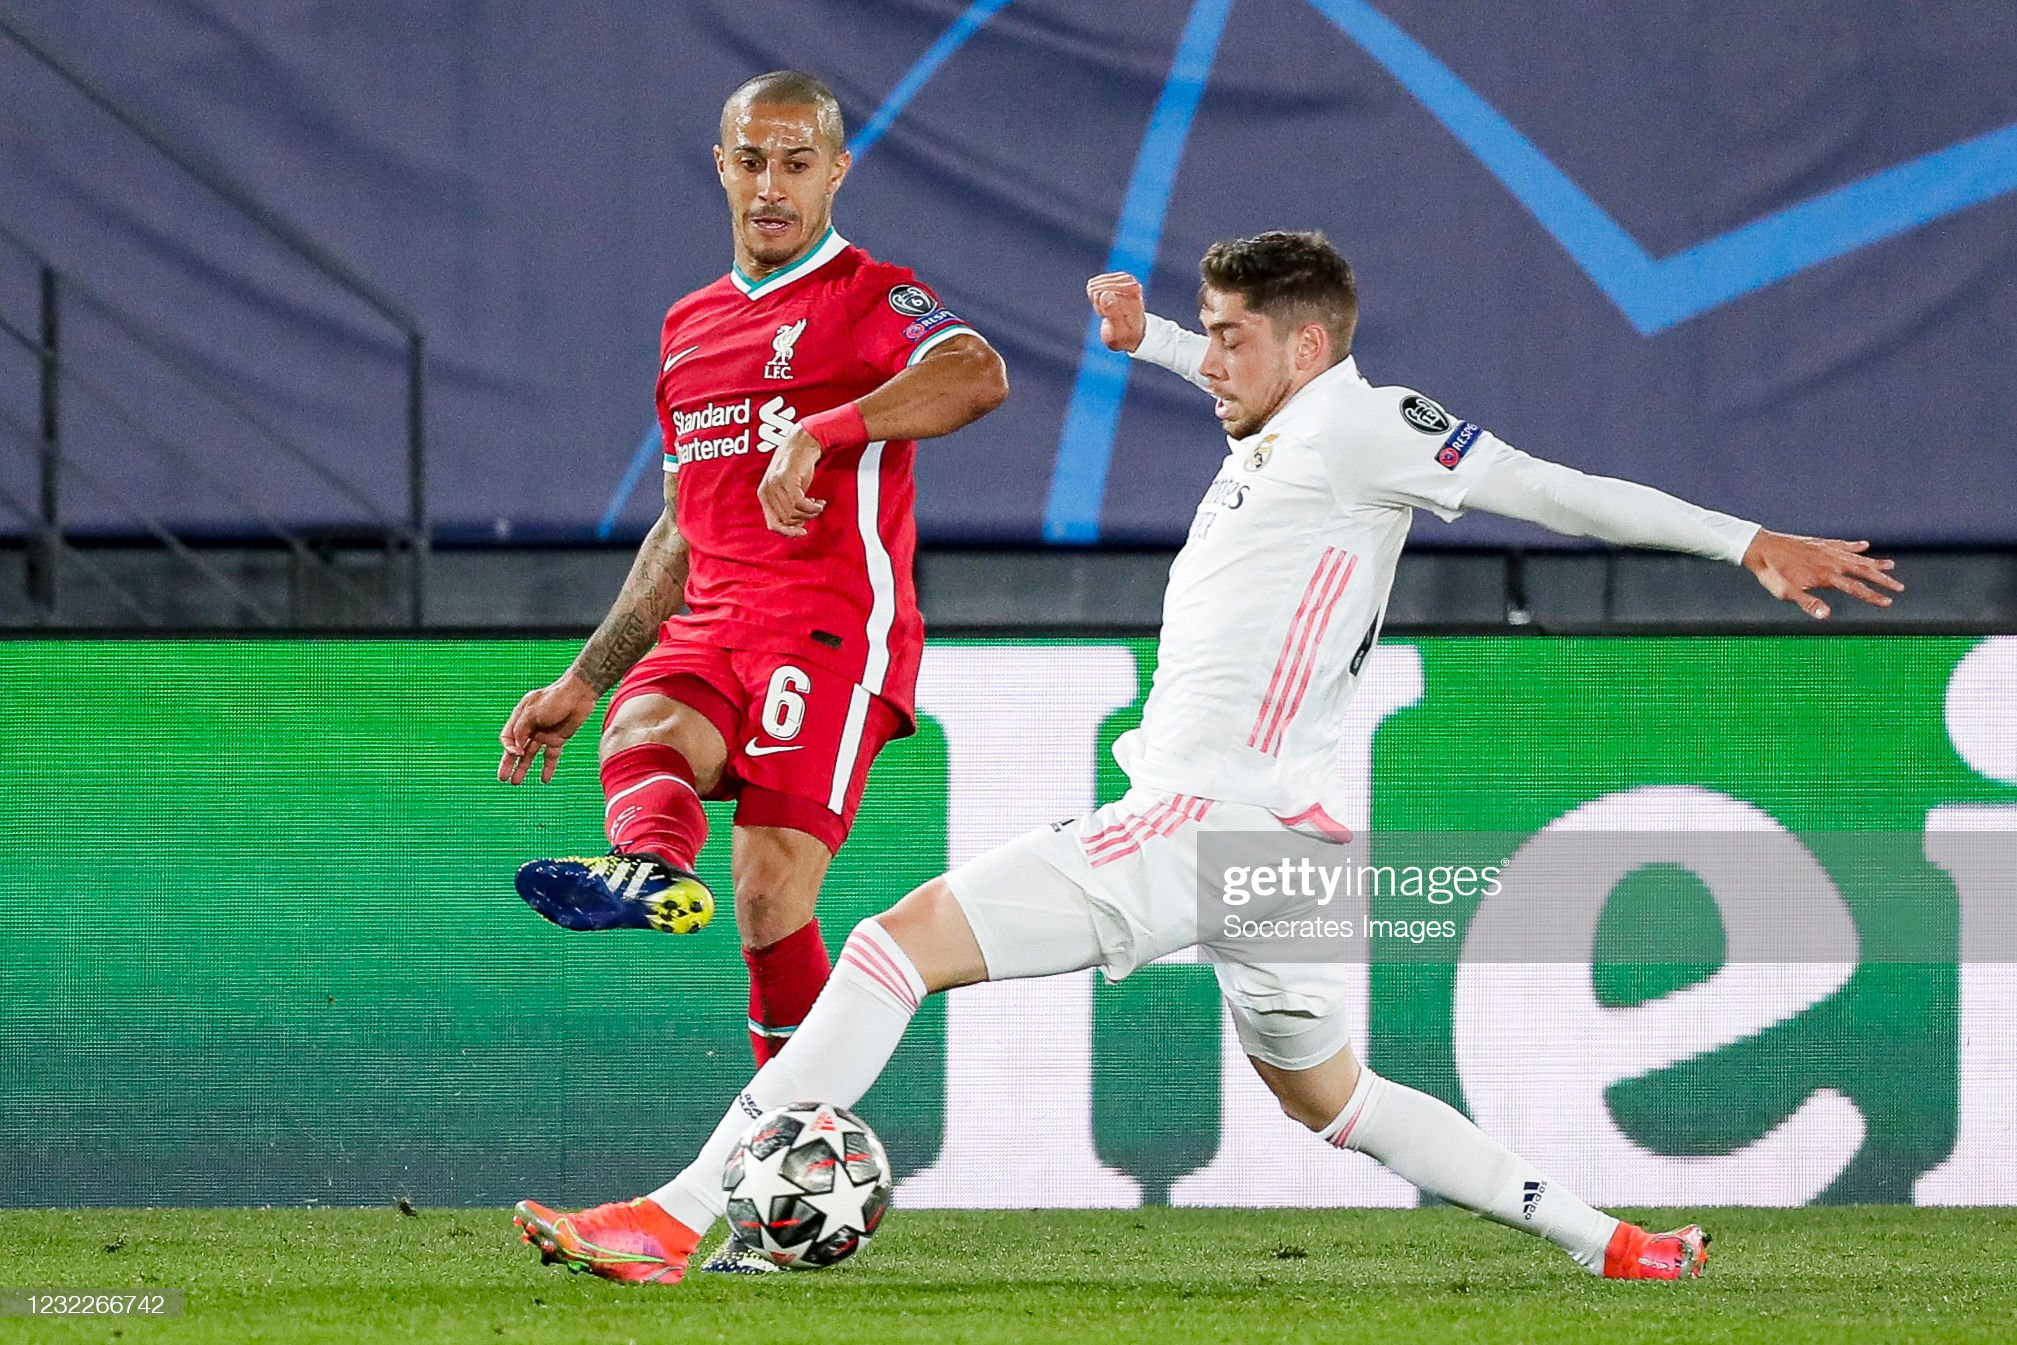 Liverpool vs Real Madrid preview, prediction and odds